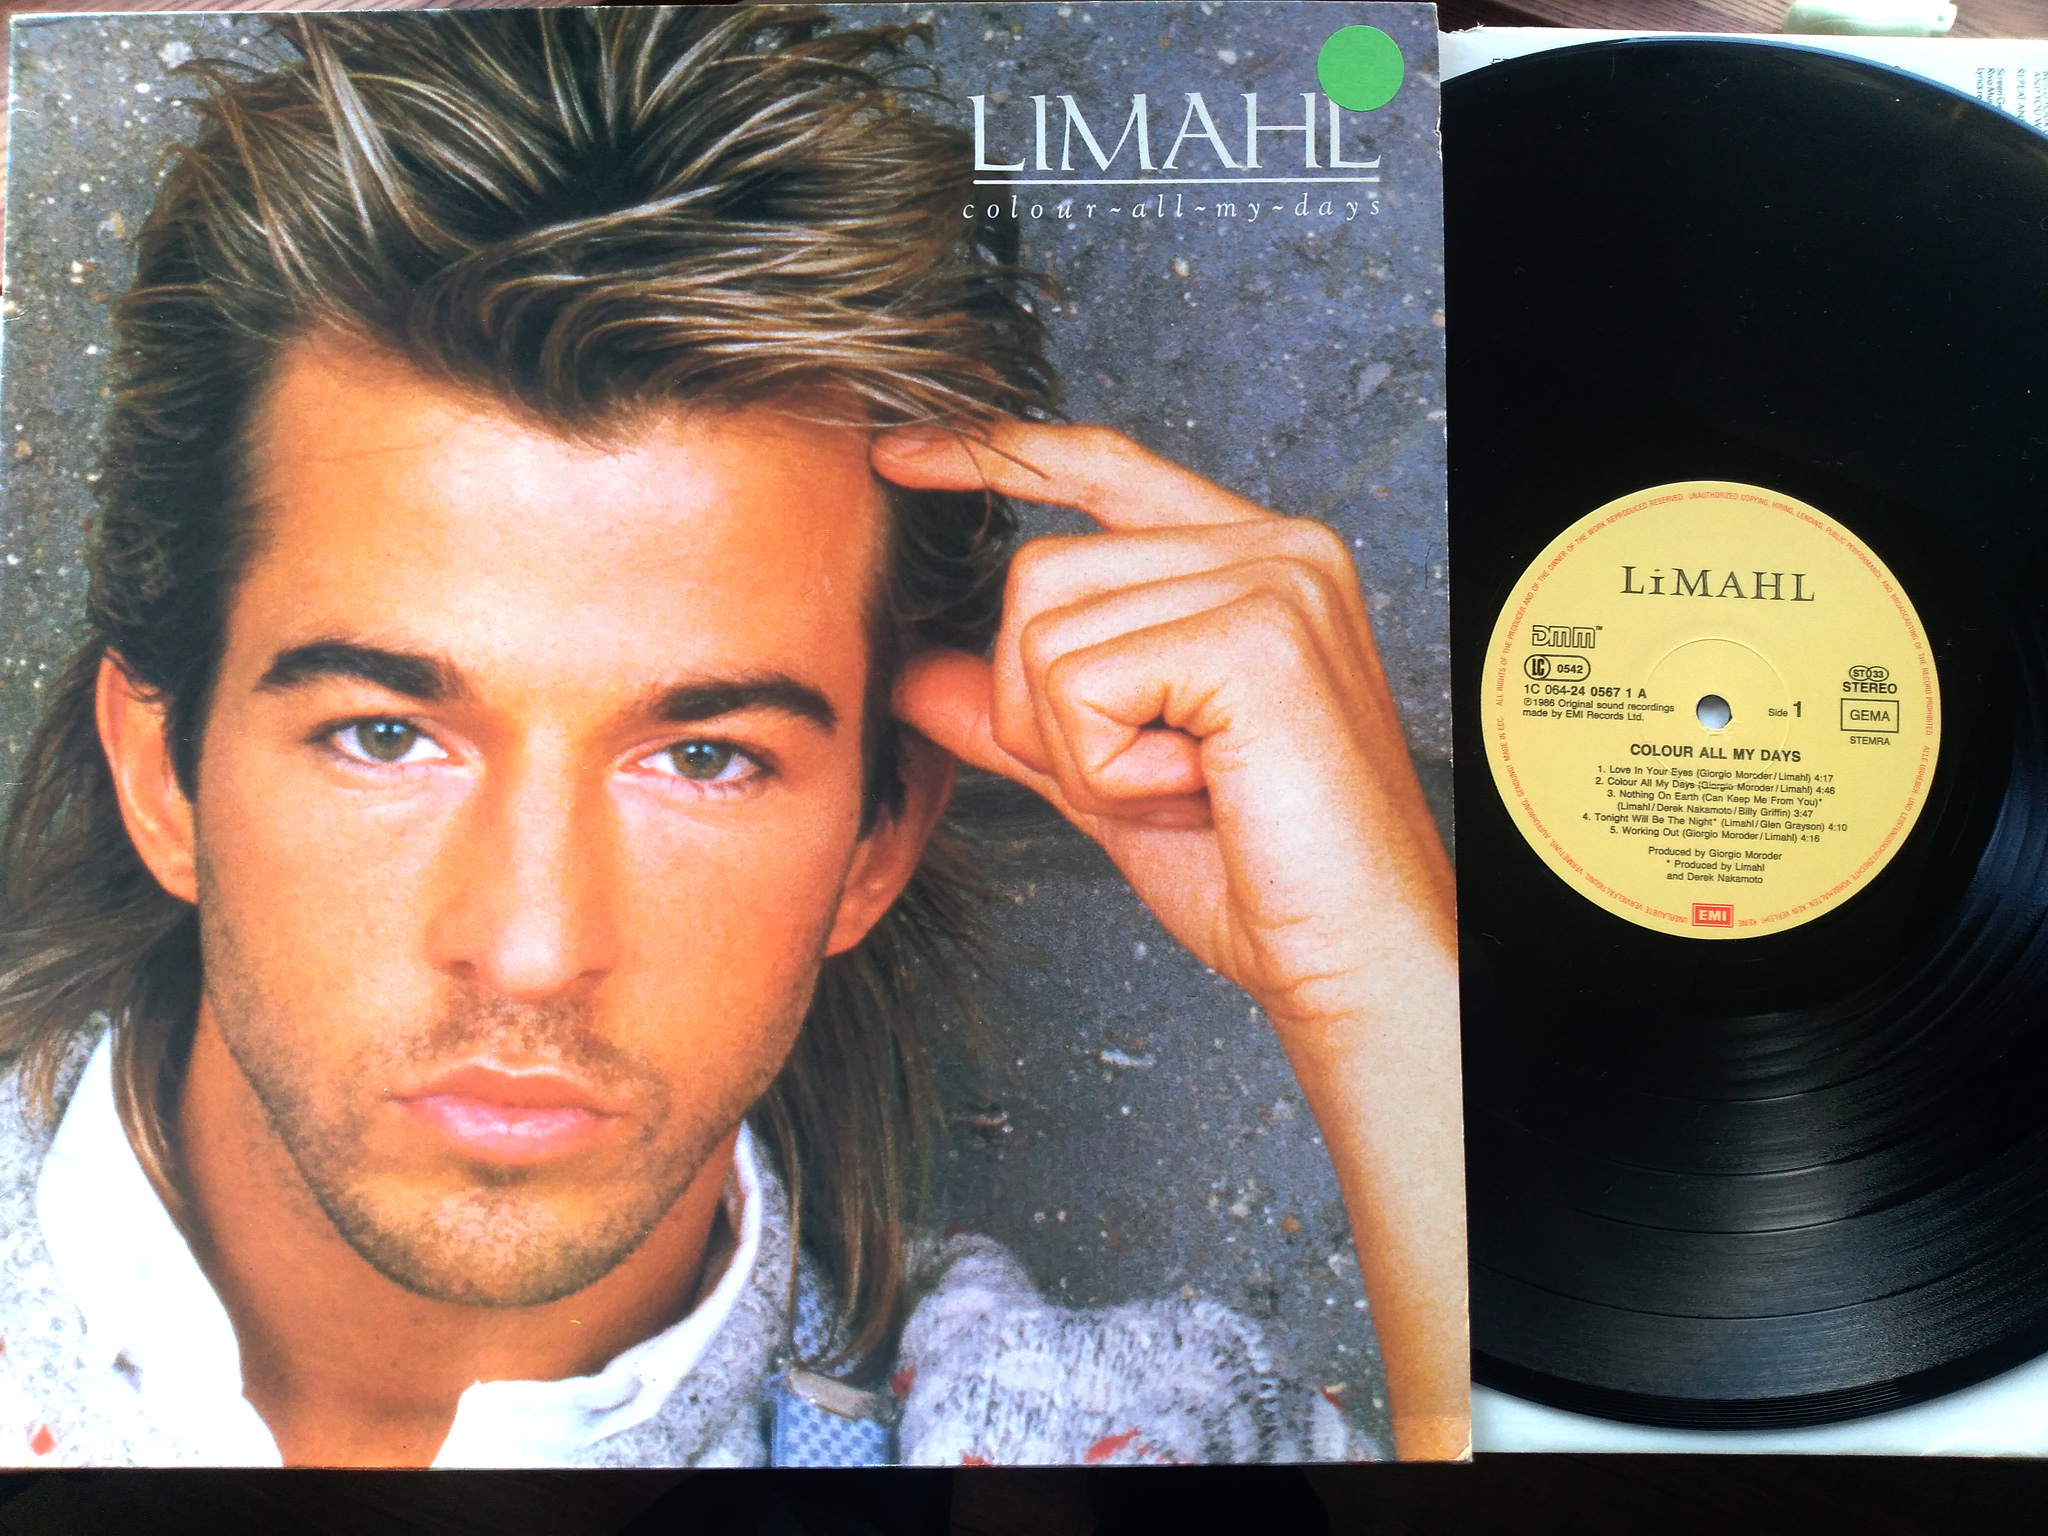 Limahl - Colour all my day LP